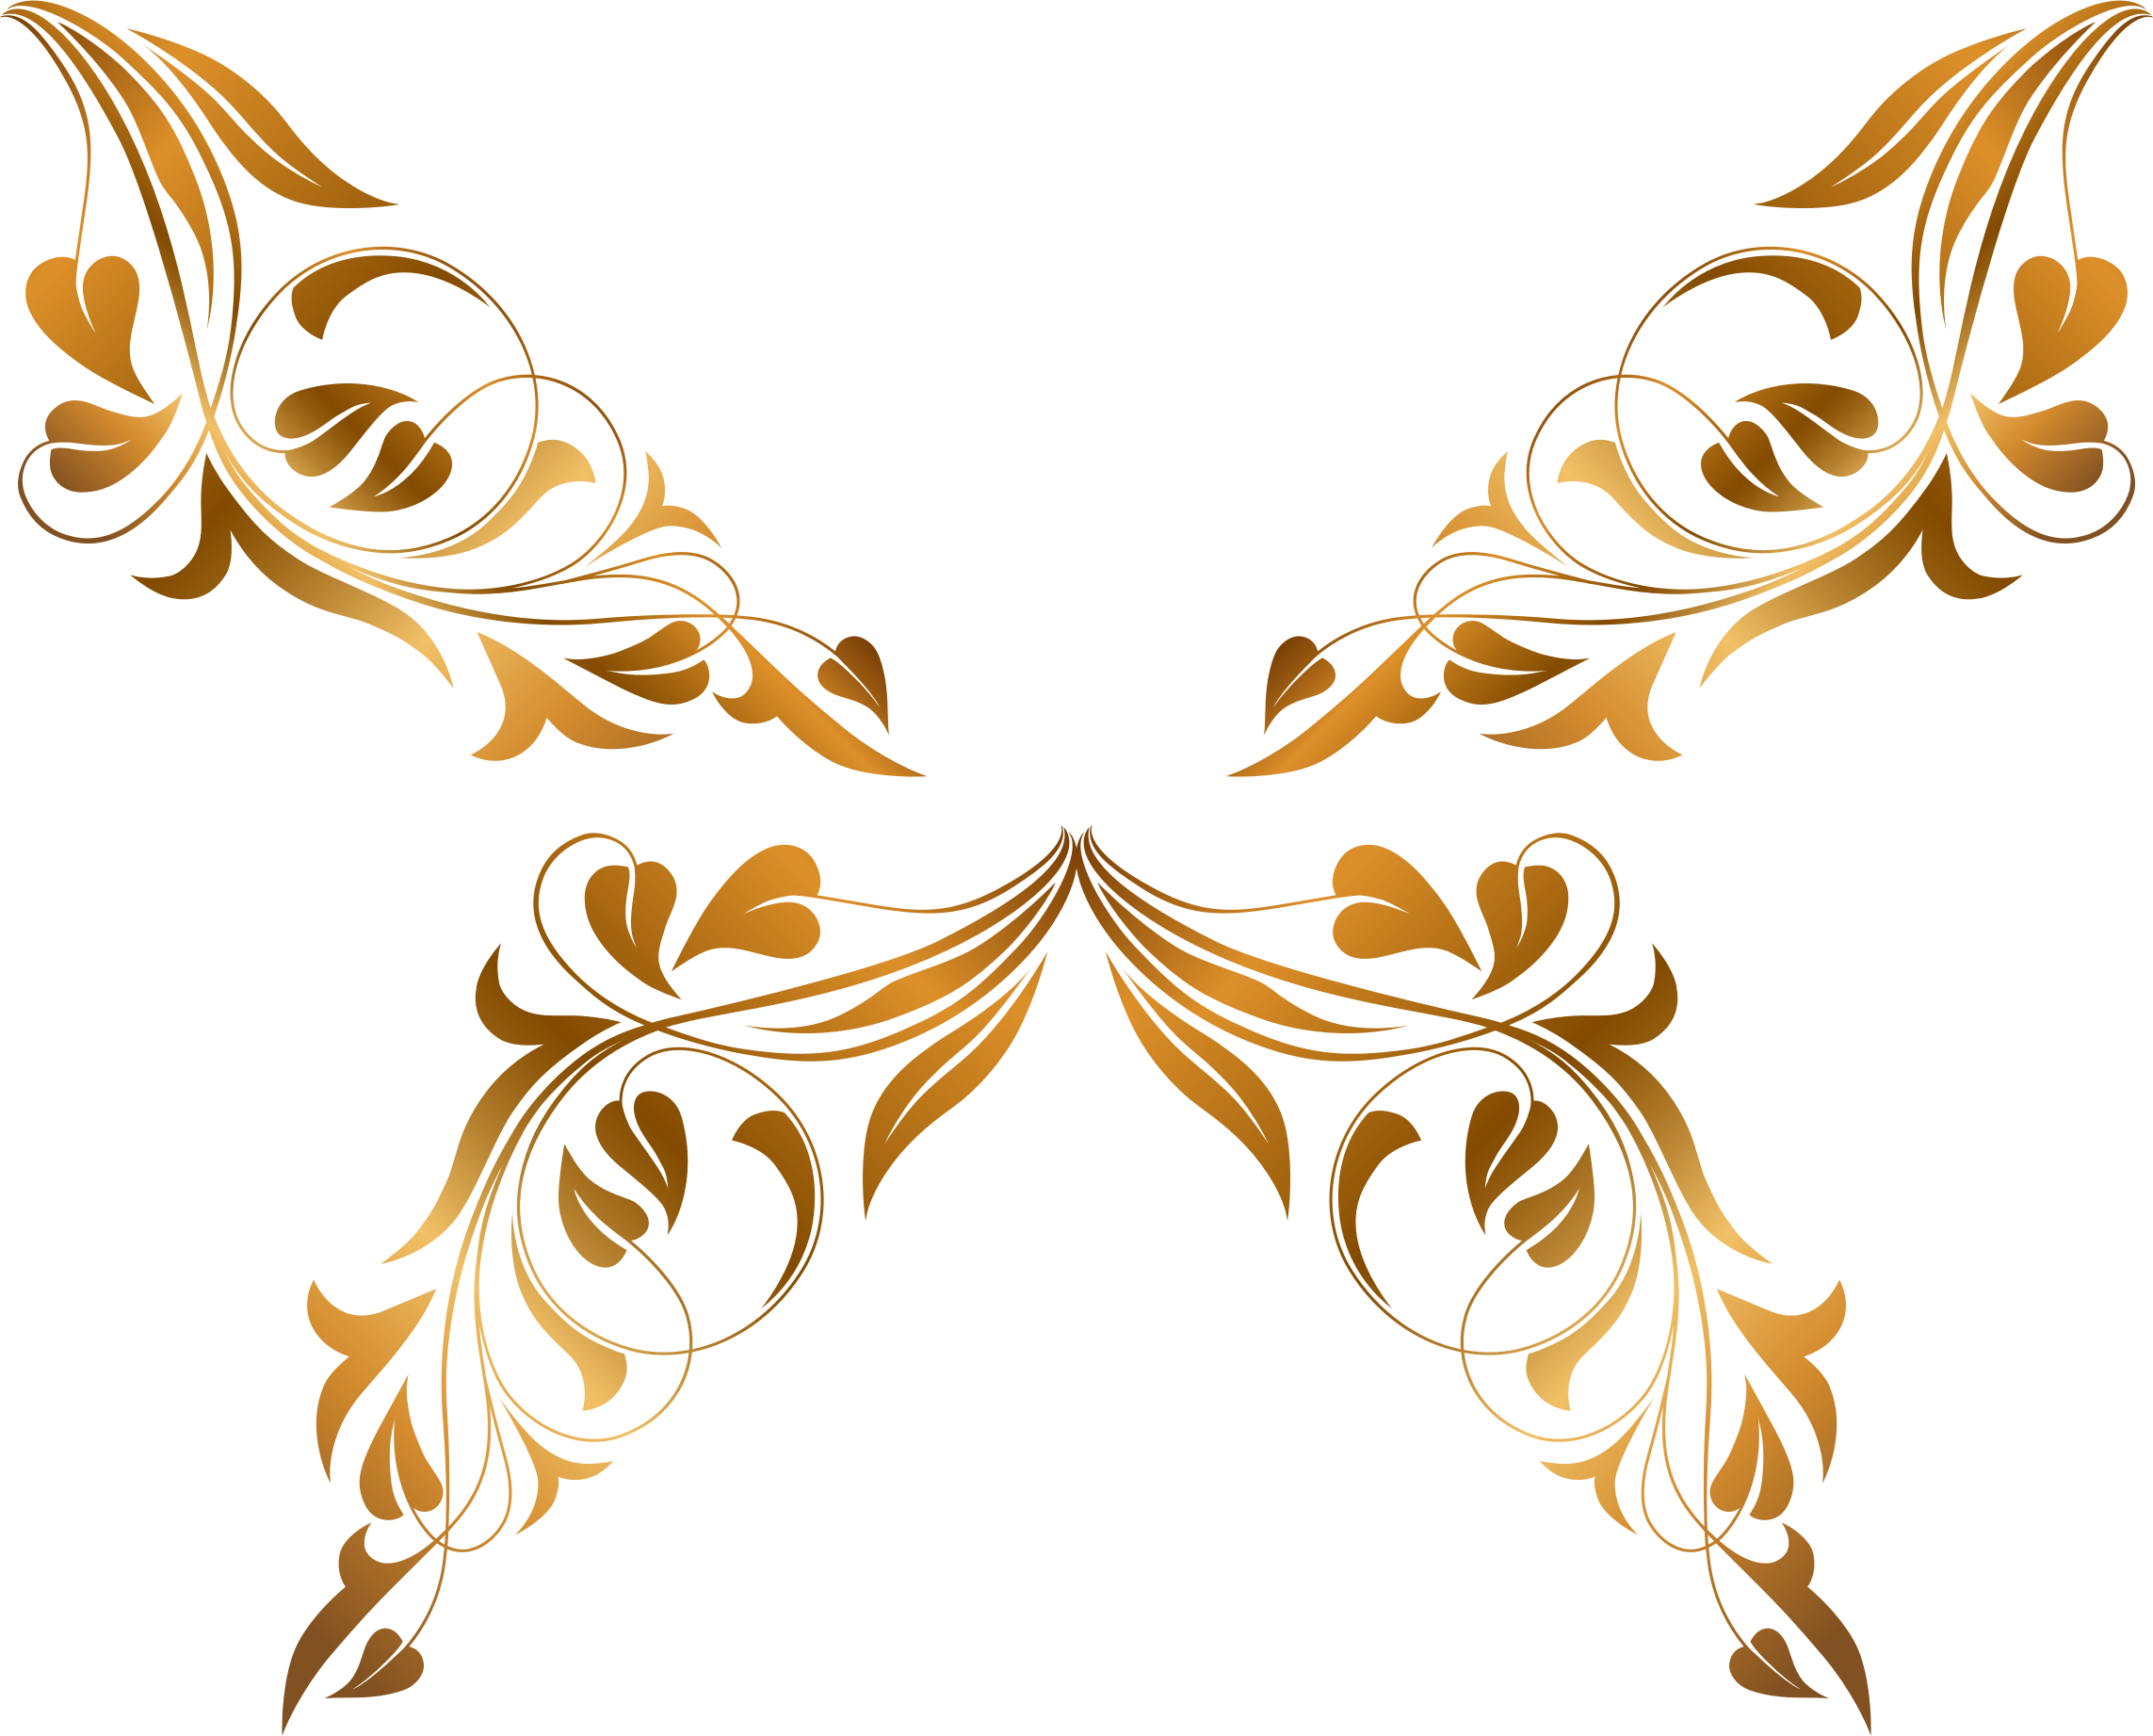 Clipart flowers and butterflies png. Floral flourish butterfly big